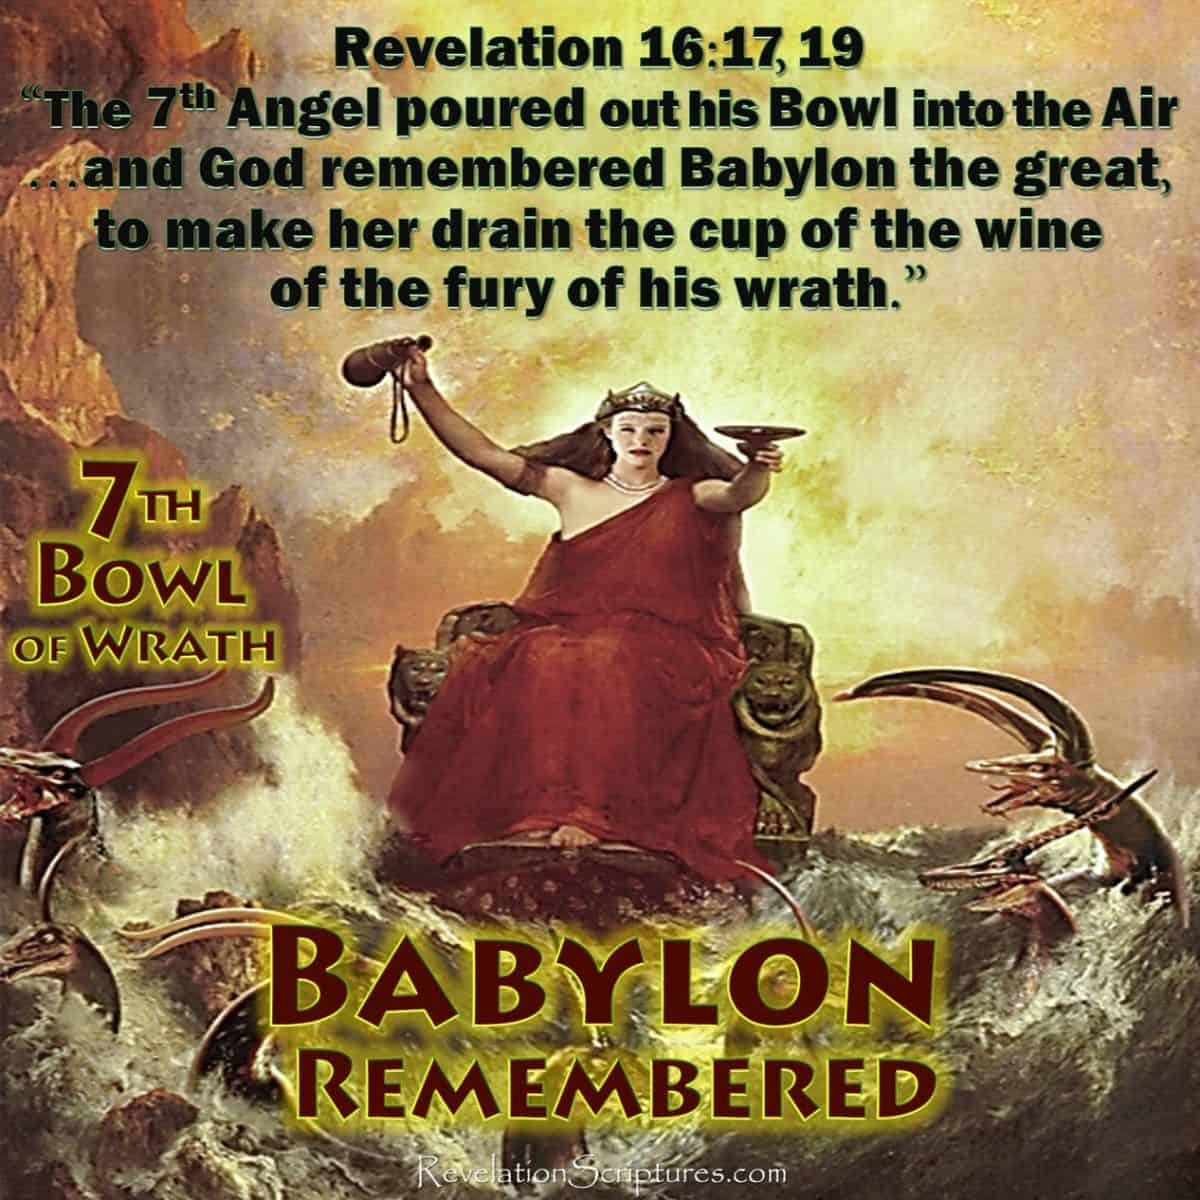 10-kings, babylon-the-great, beast, burn-with-fire, cup, destroy, drunk-with-blood-of-saints, fall-of-babylon, fornication, harlot, image, judge, kings, luxury, mark, prostitute, revelation-13, revelation-14, revelation-17, revelation-18, revelation-19, rich, sexual-immorality